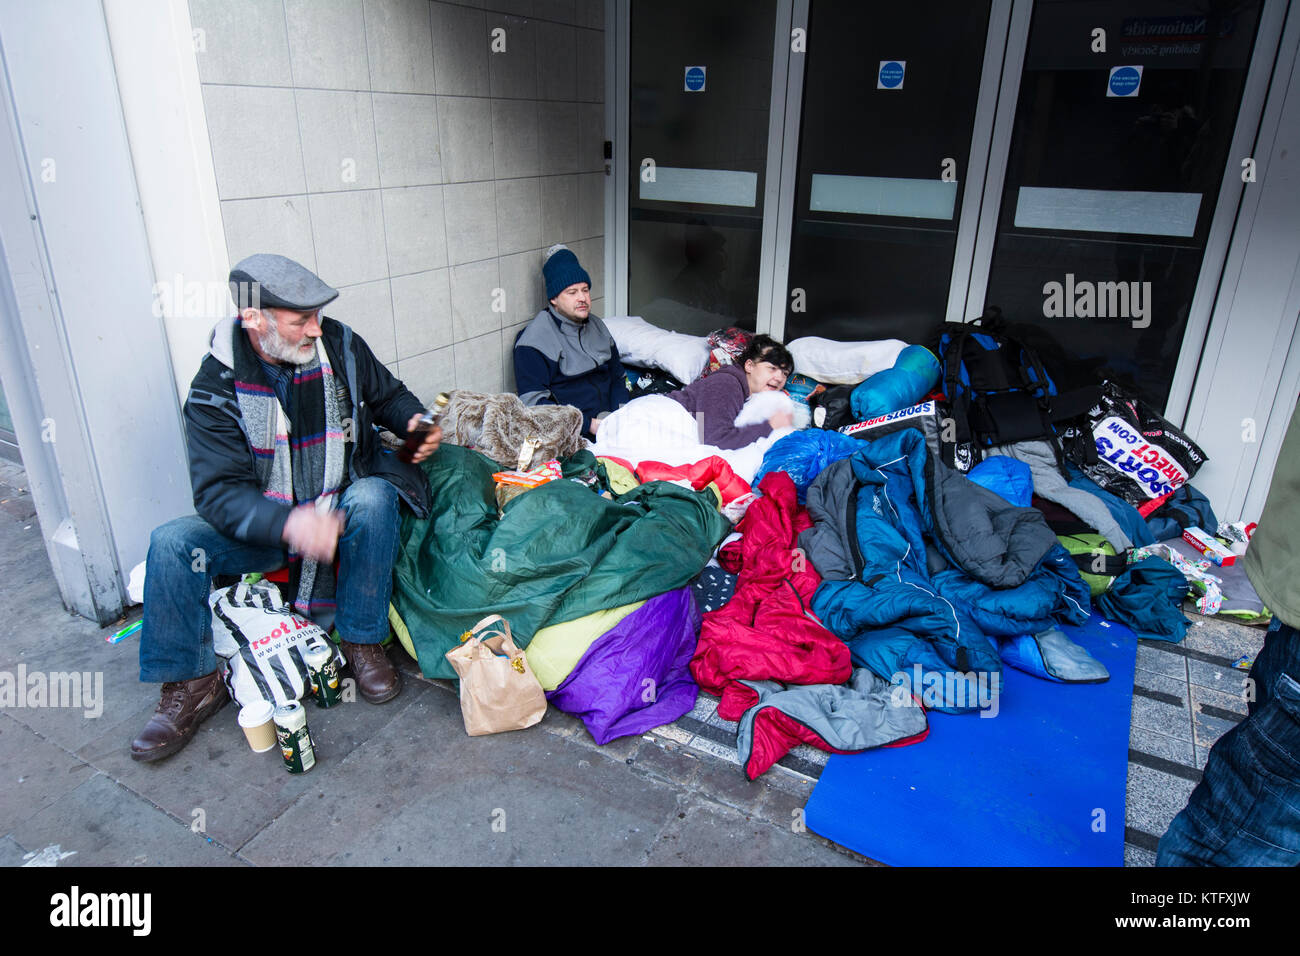 Manchester UK; 25th. December 2017: Manchester rough sleepers in Manchester on Christmas Day. Scores of homeless - Stock Image